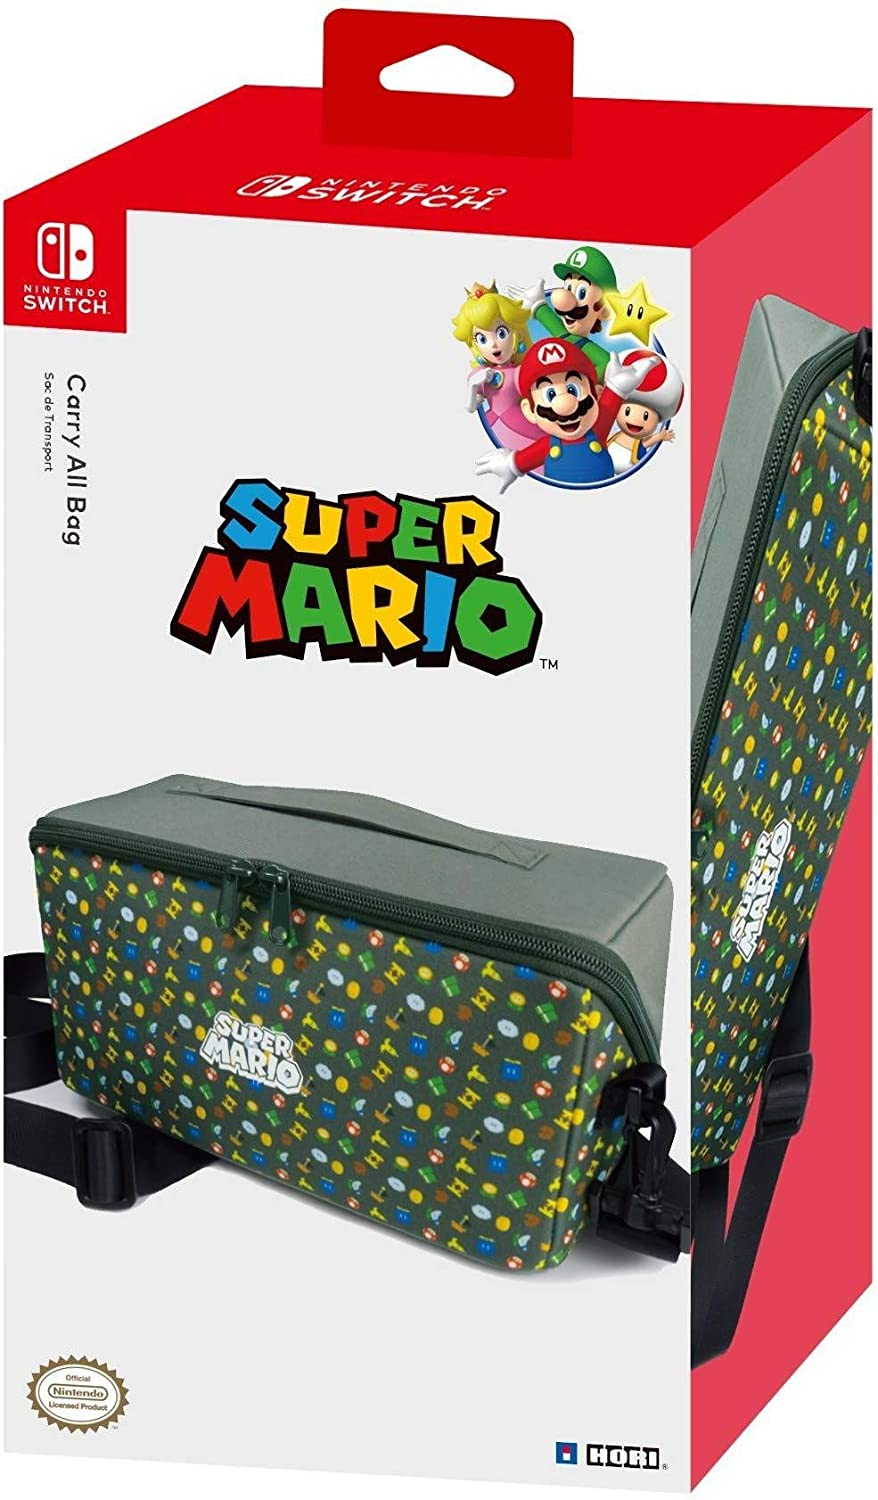 Hori - Bolsa De Transporte Super Mario (Nintendo Switch): Amazon.es: Videojuegos